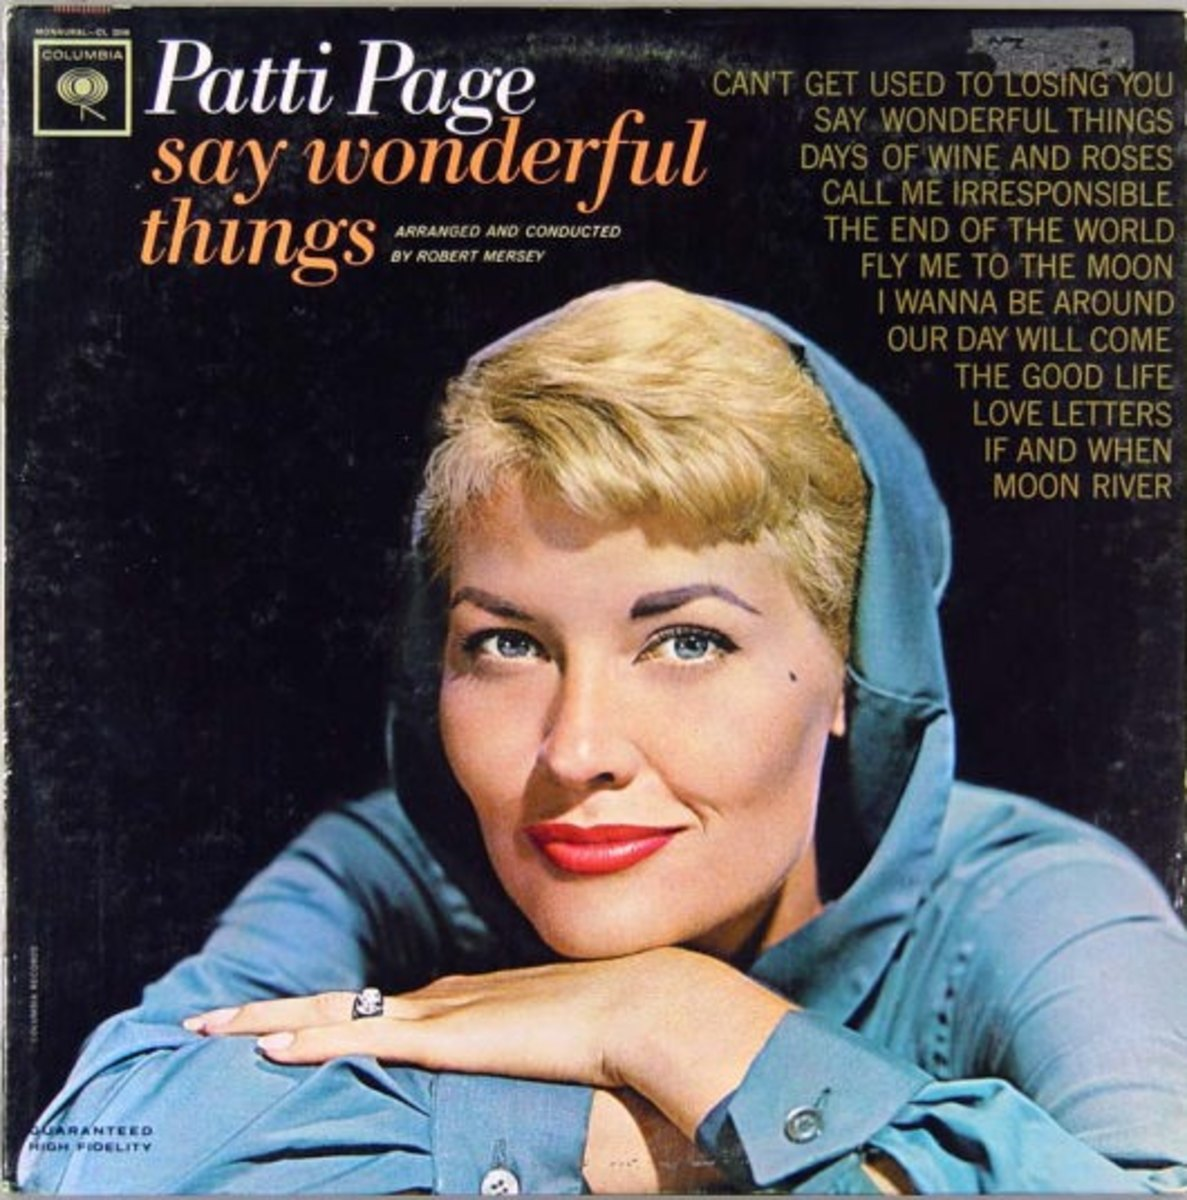 Patti Page covered the song in her debut album Say Wonderful Things (1963)